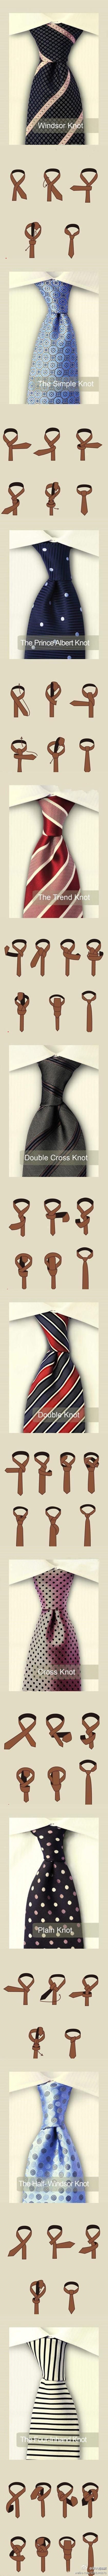 fellas, no excuses not to know how to tie a tie...